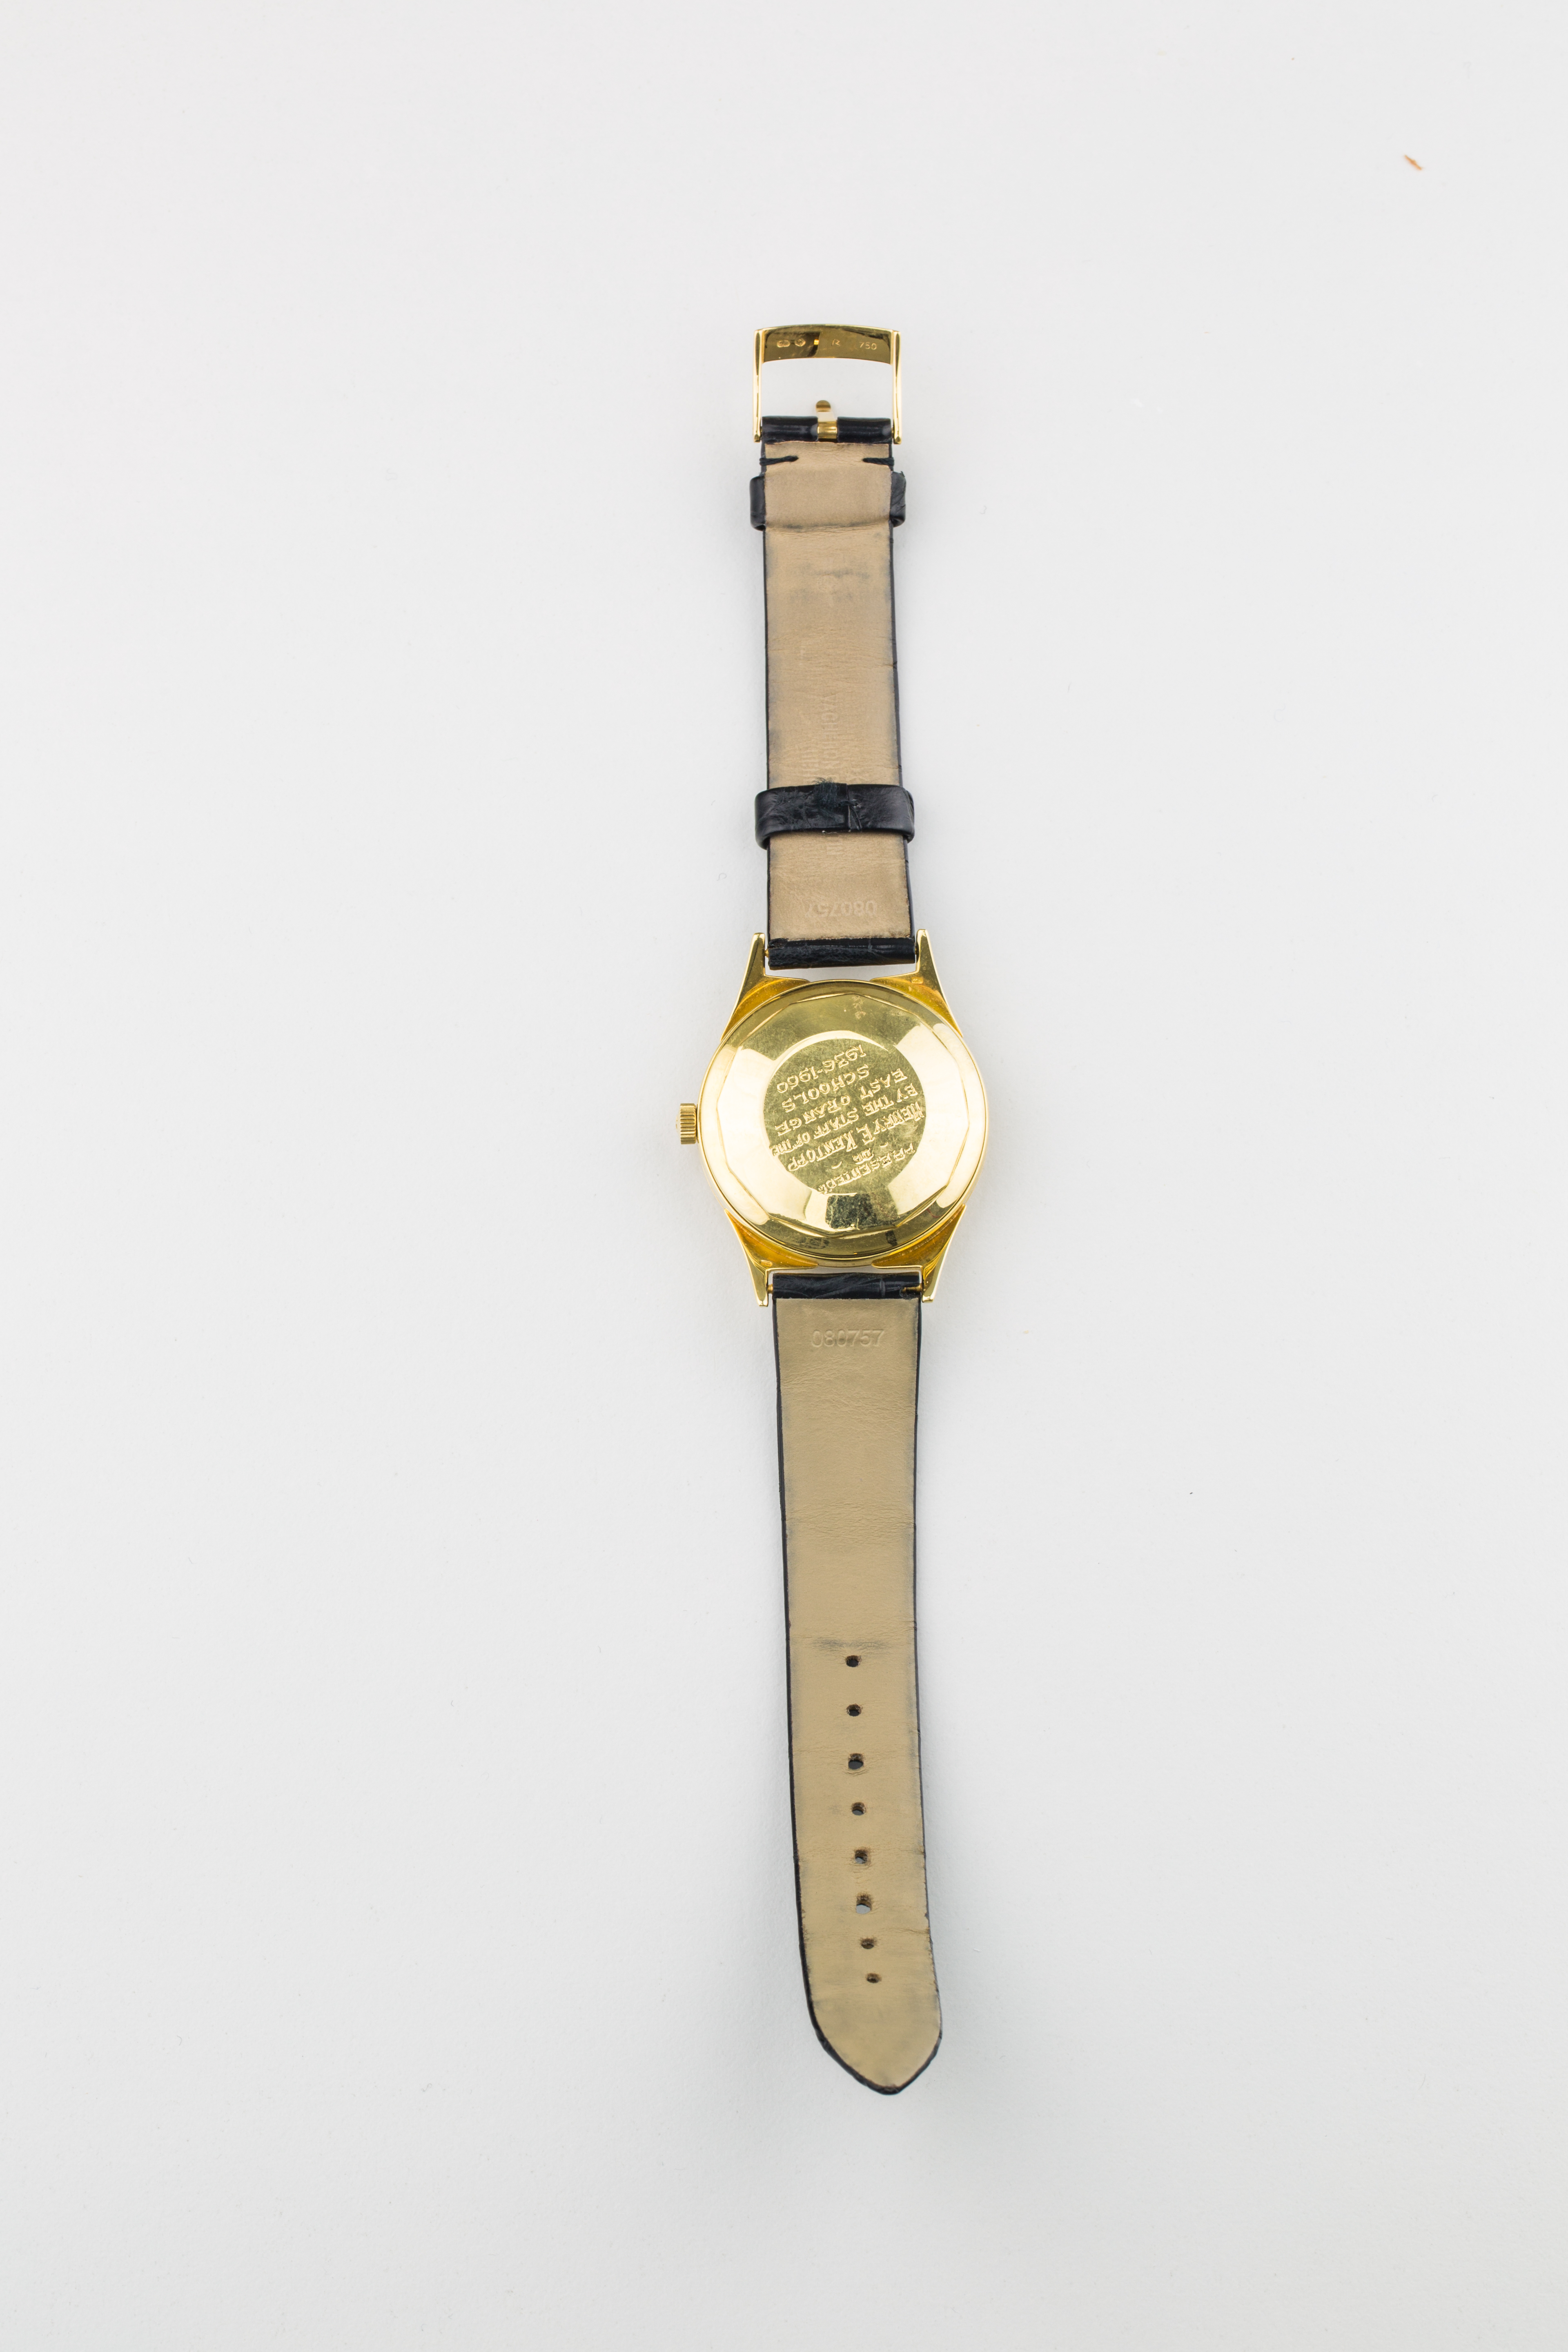 Lot 21 - Vacheron Constantin 18ct Gold Watch